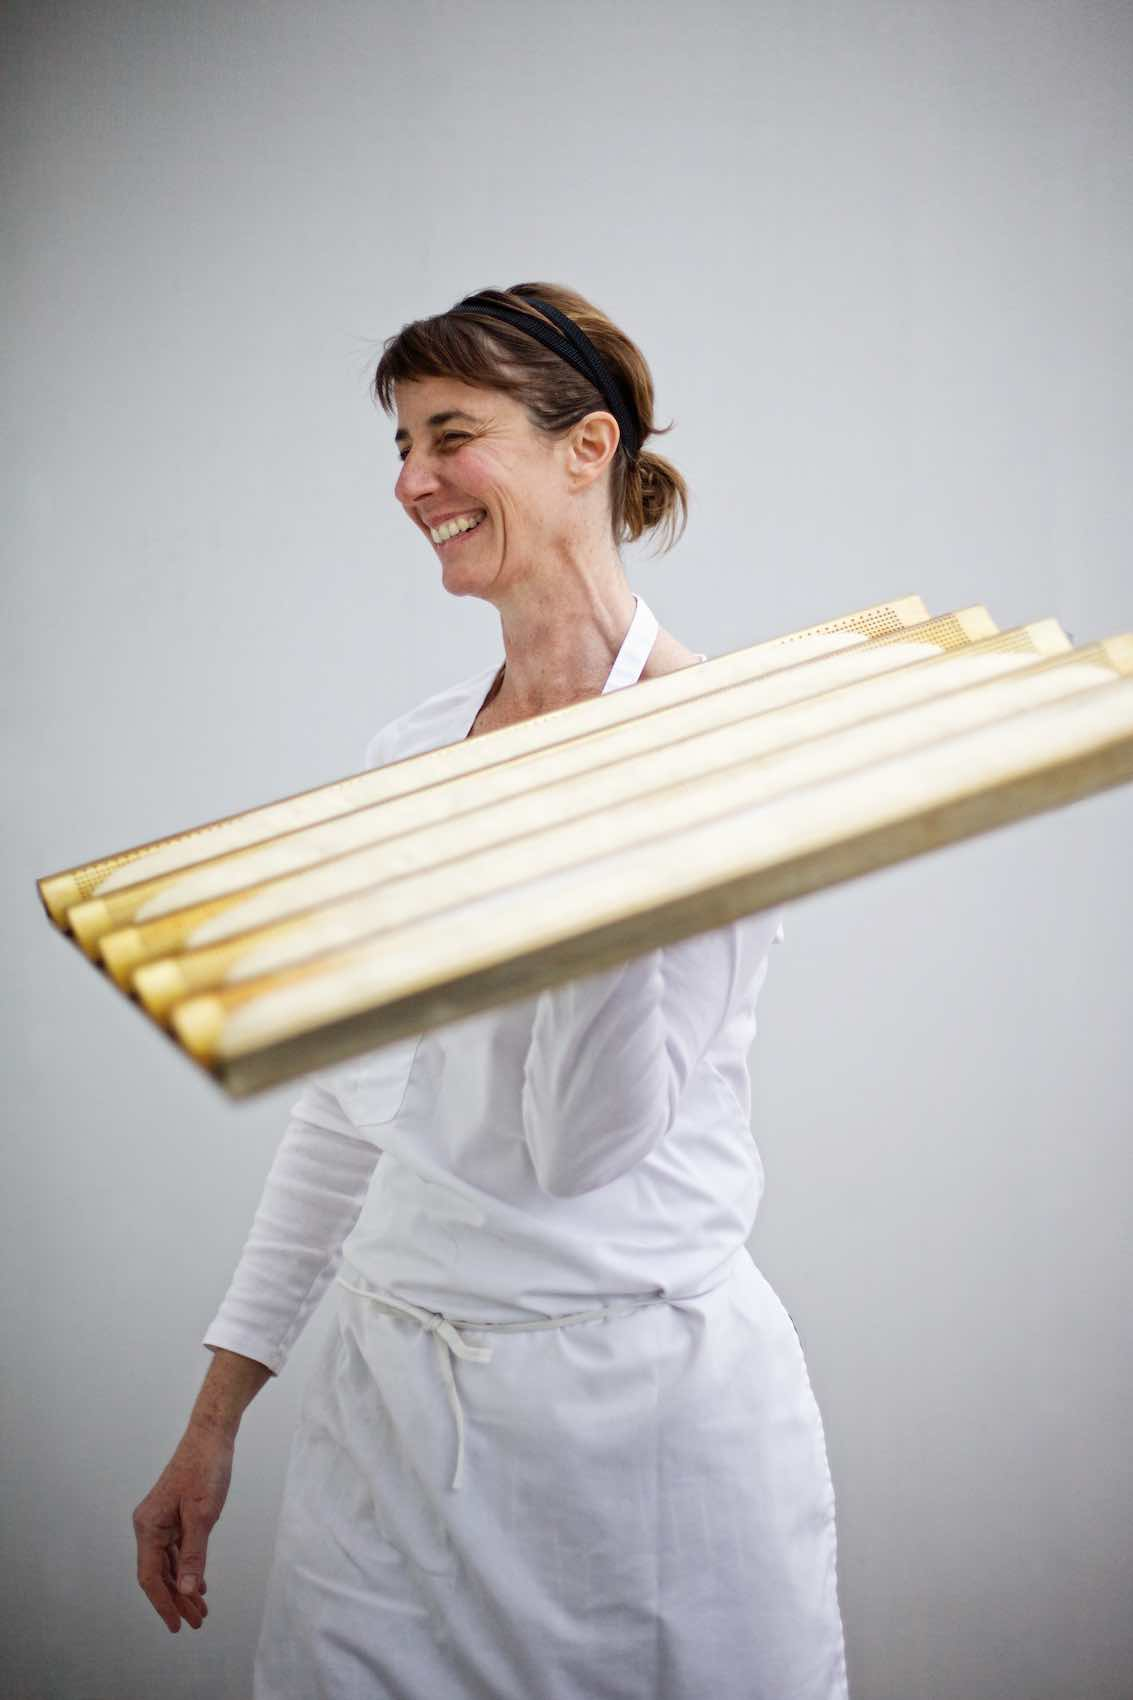 Jody Horton Photography - Baker in all white smiling, carrying a tray of unbaked baguettes.